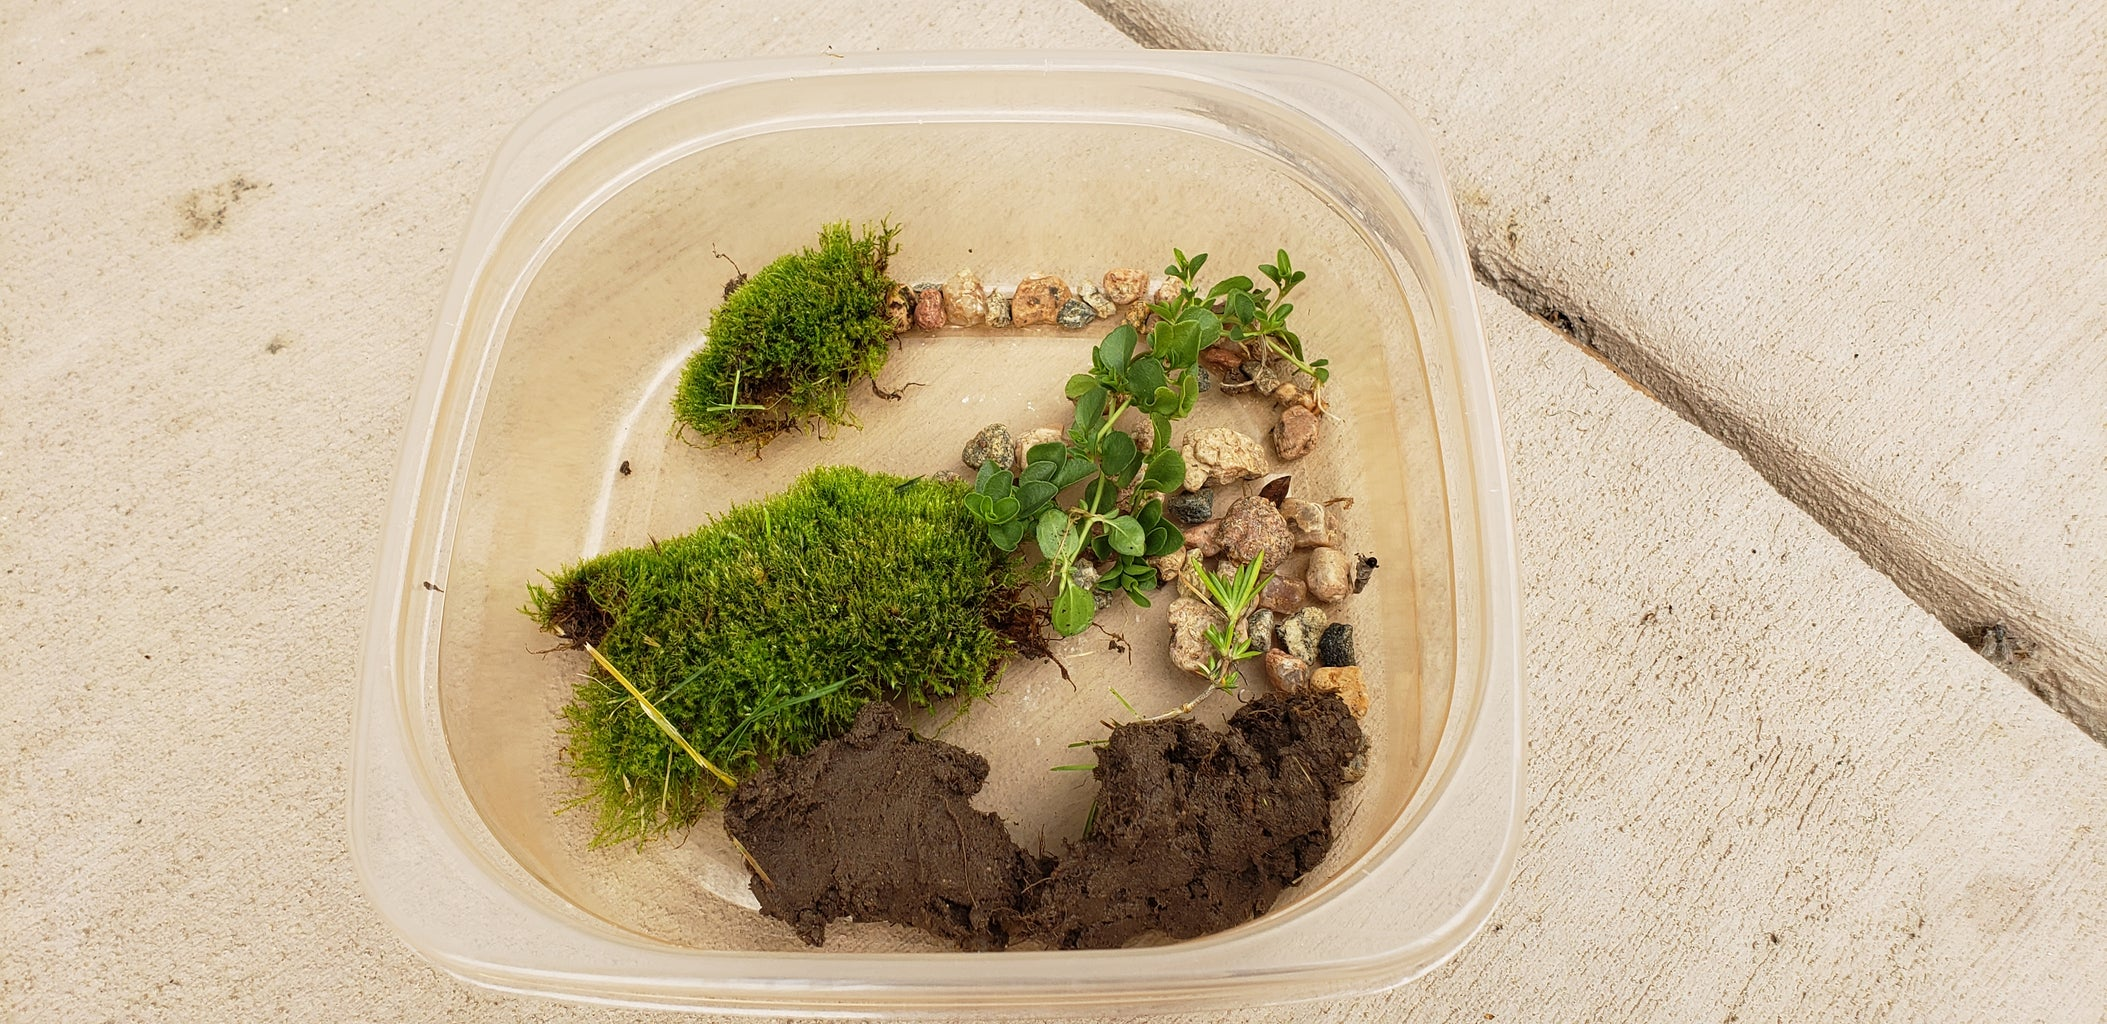 Collecting Items for Your Terrarium